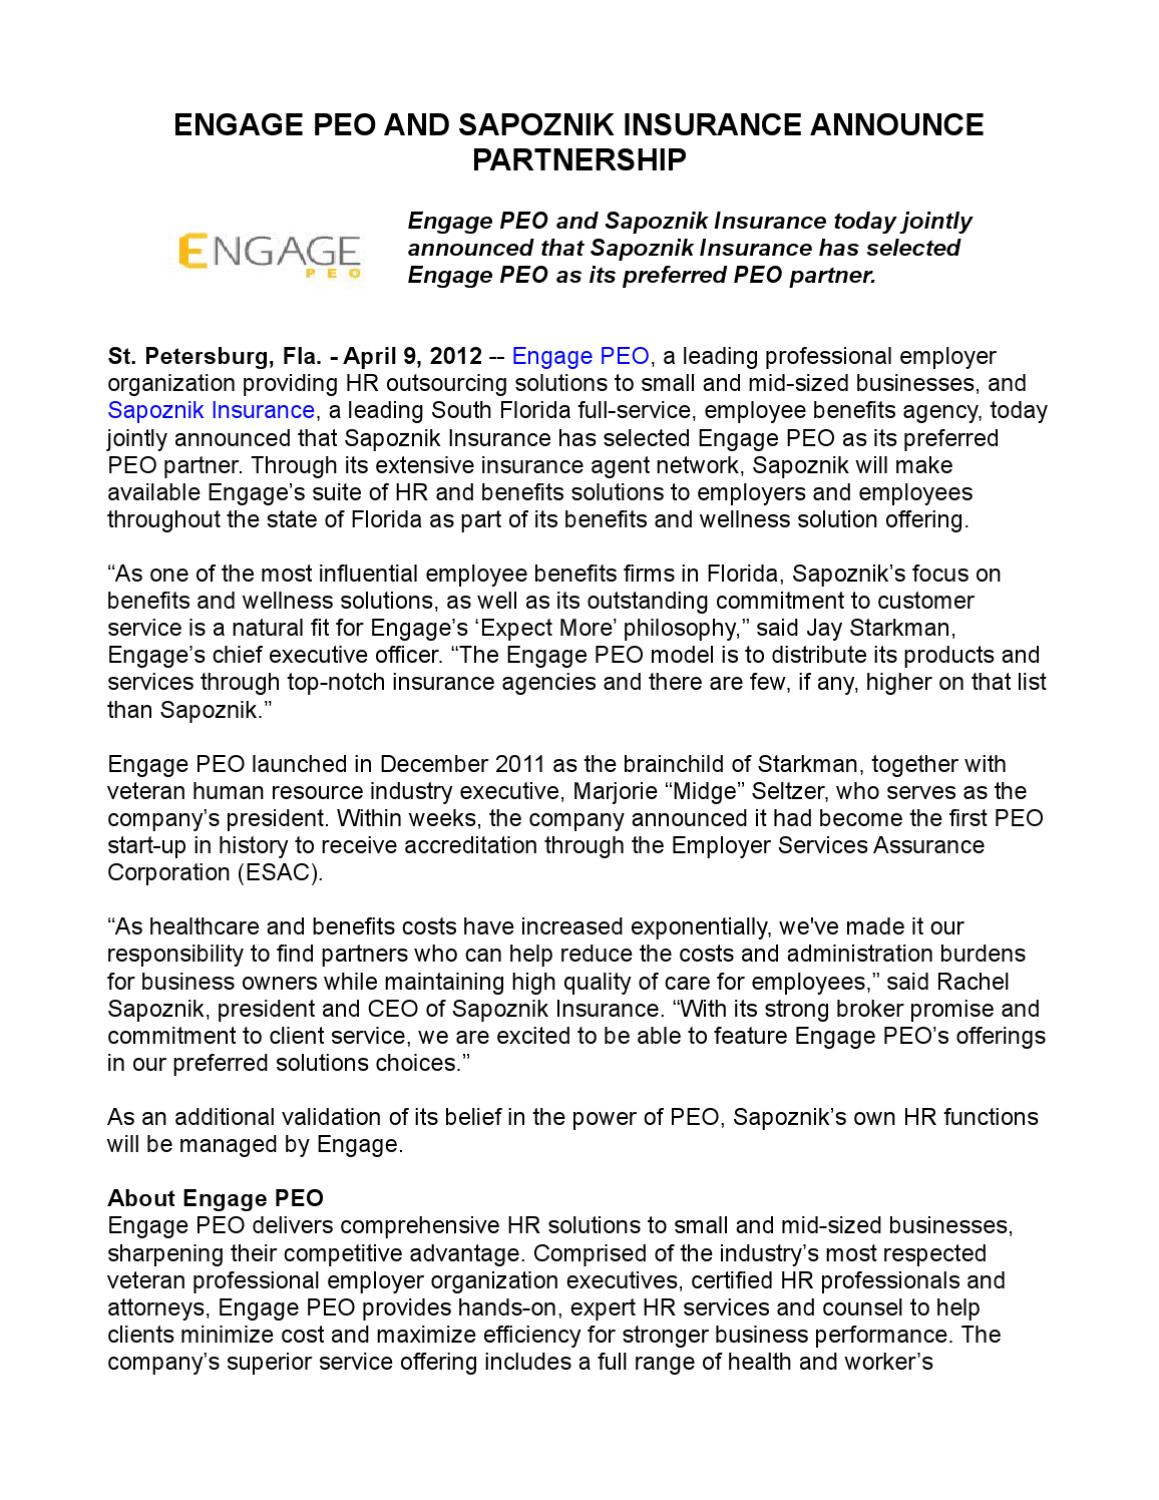 Engage PEO and Sapoznik Insurance Announce Partnership by ...